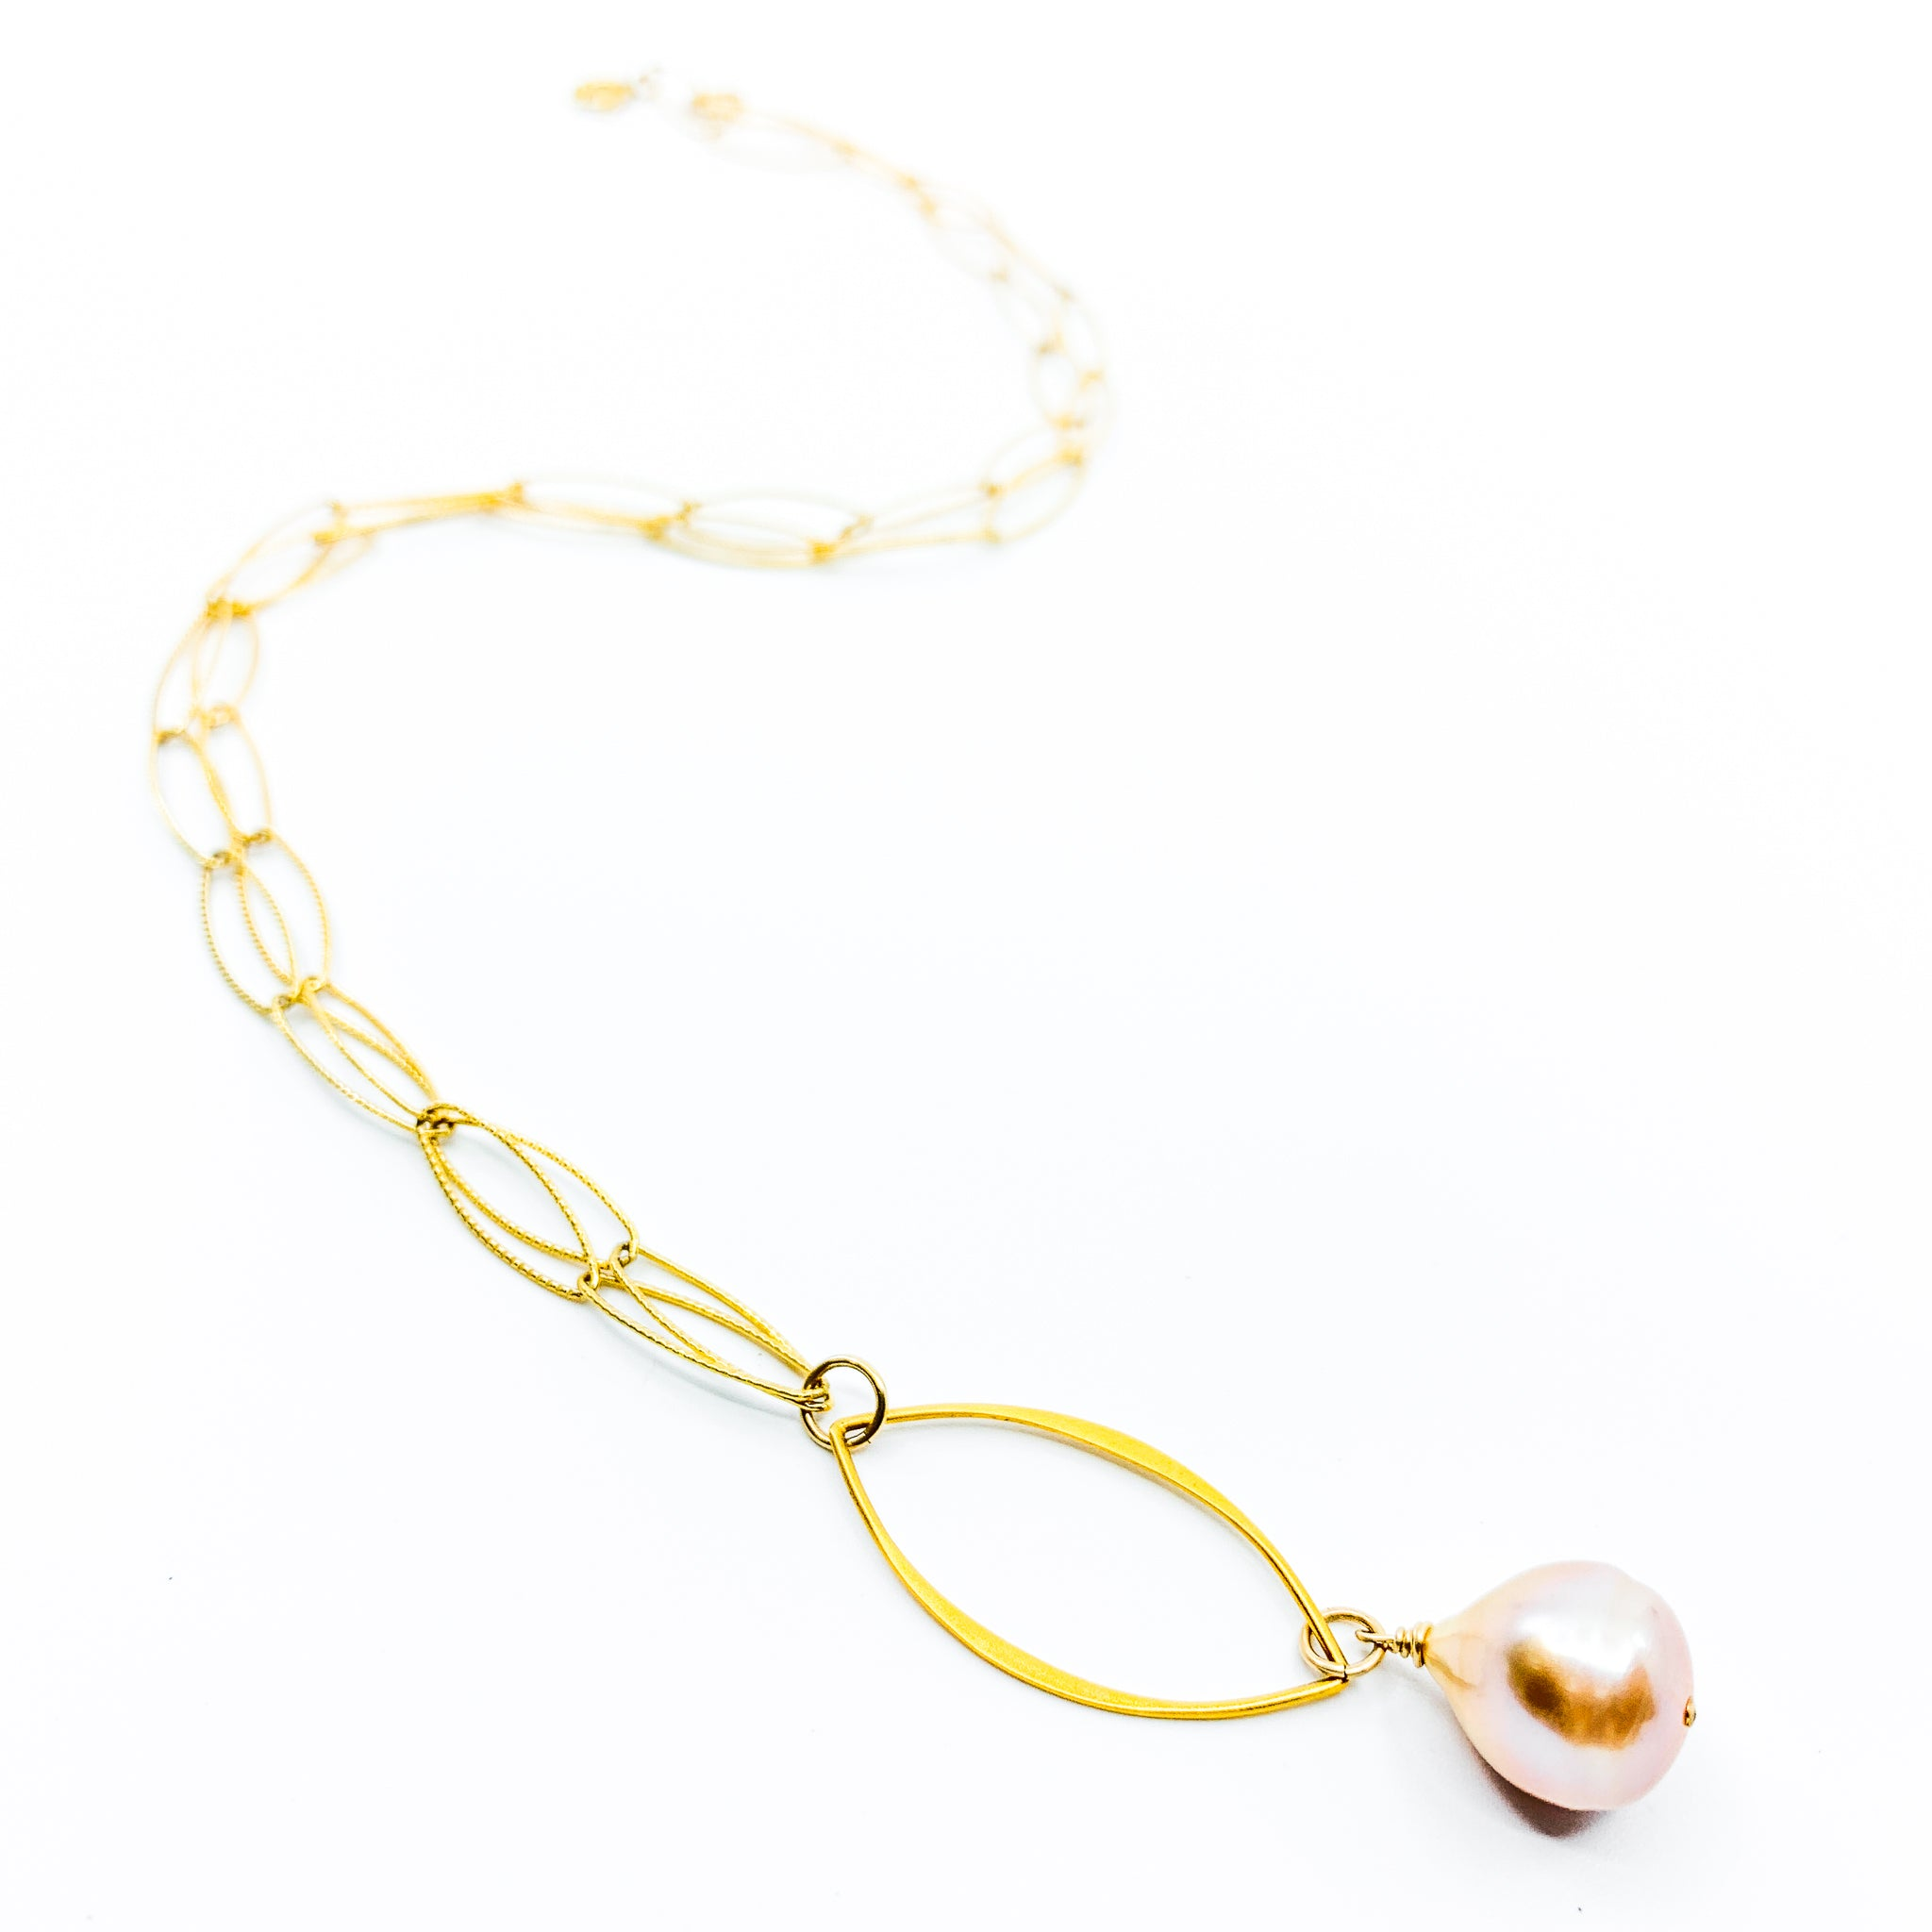 gold marquee chain natural pink pearl necklace by eve black jewelry made in Hawaii